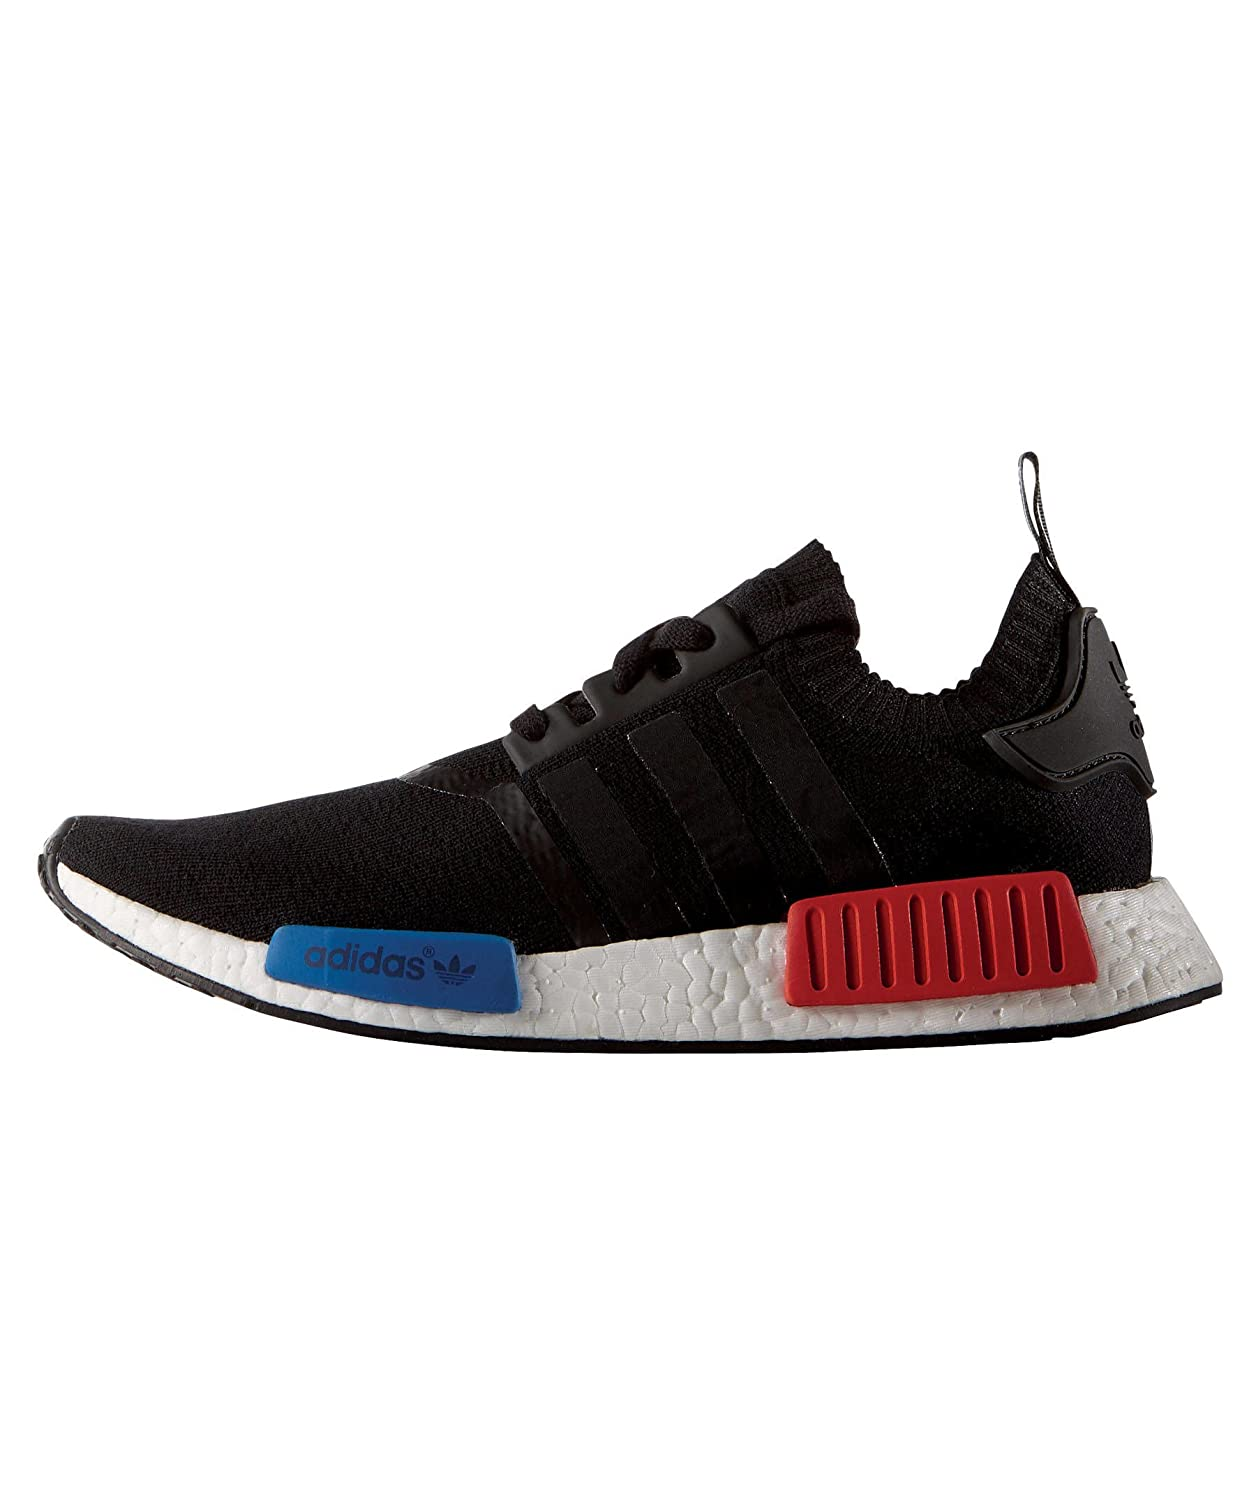 sale retailer b0771 31f33 Amazon.com  Adidas NMD Runner PK OG (2017) S79168 Black White-rd-blu sz  8.5us  Sports   Outdoors